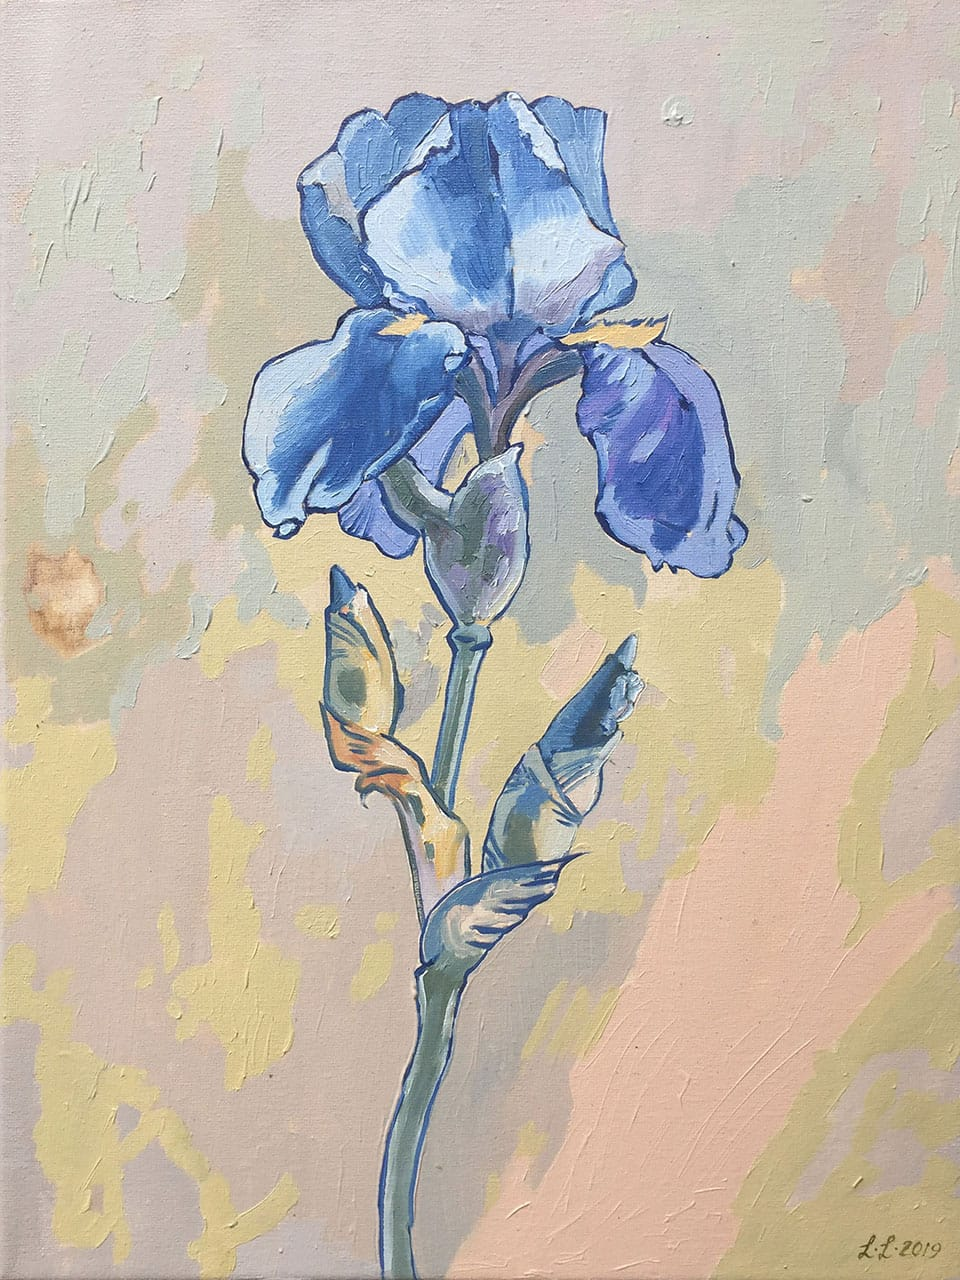 Iris, oil on canvas, 16x12inches